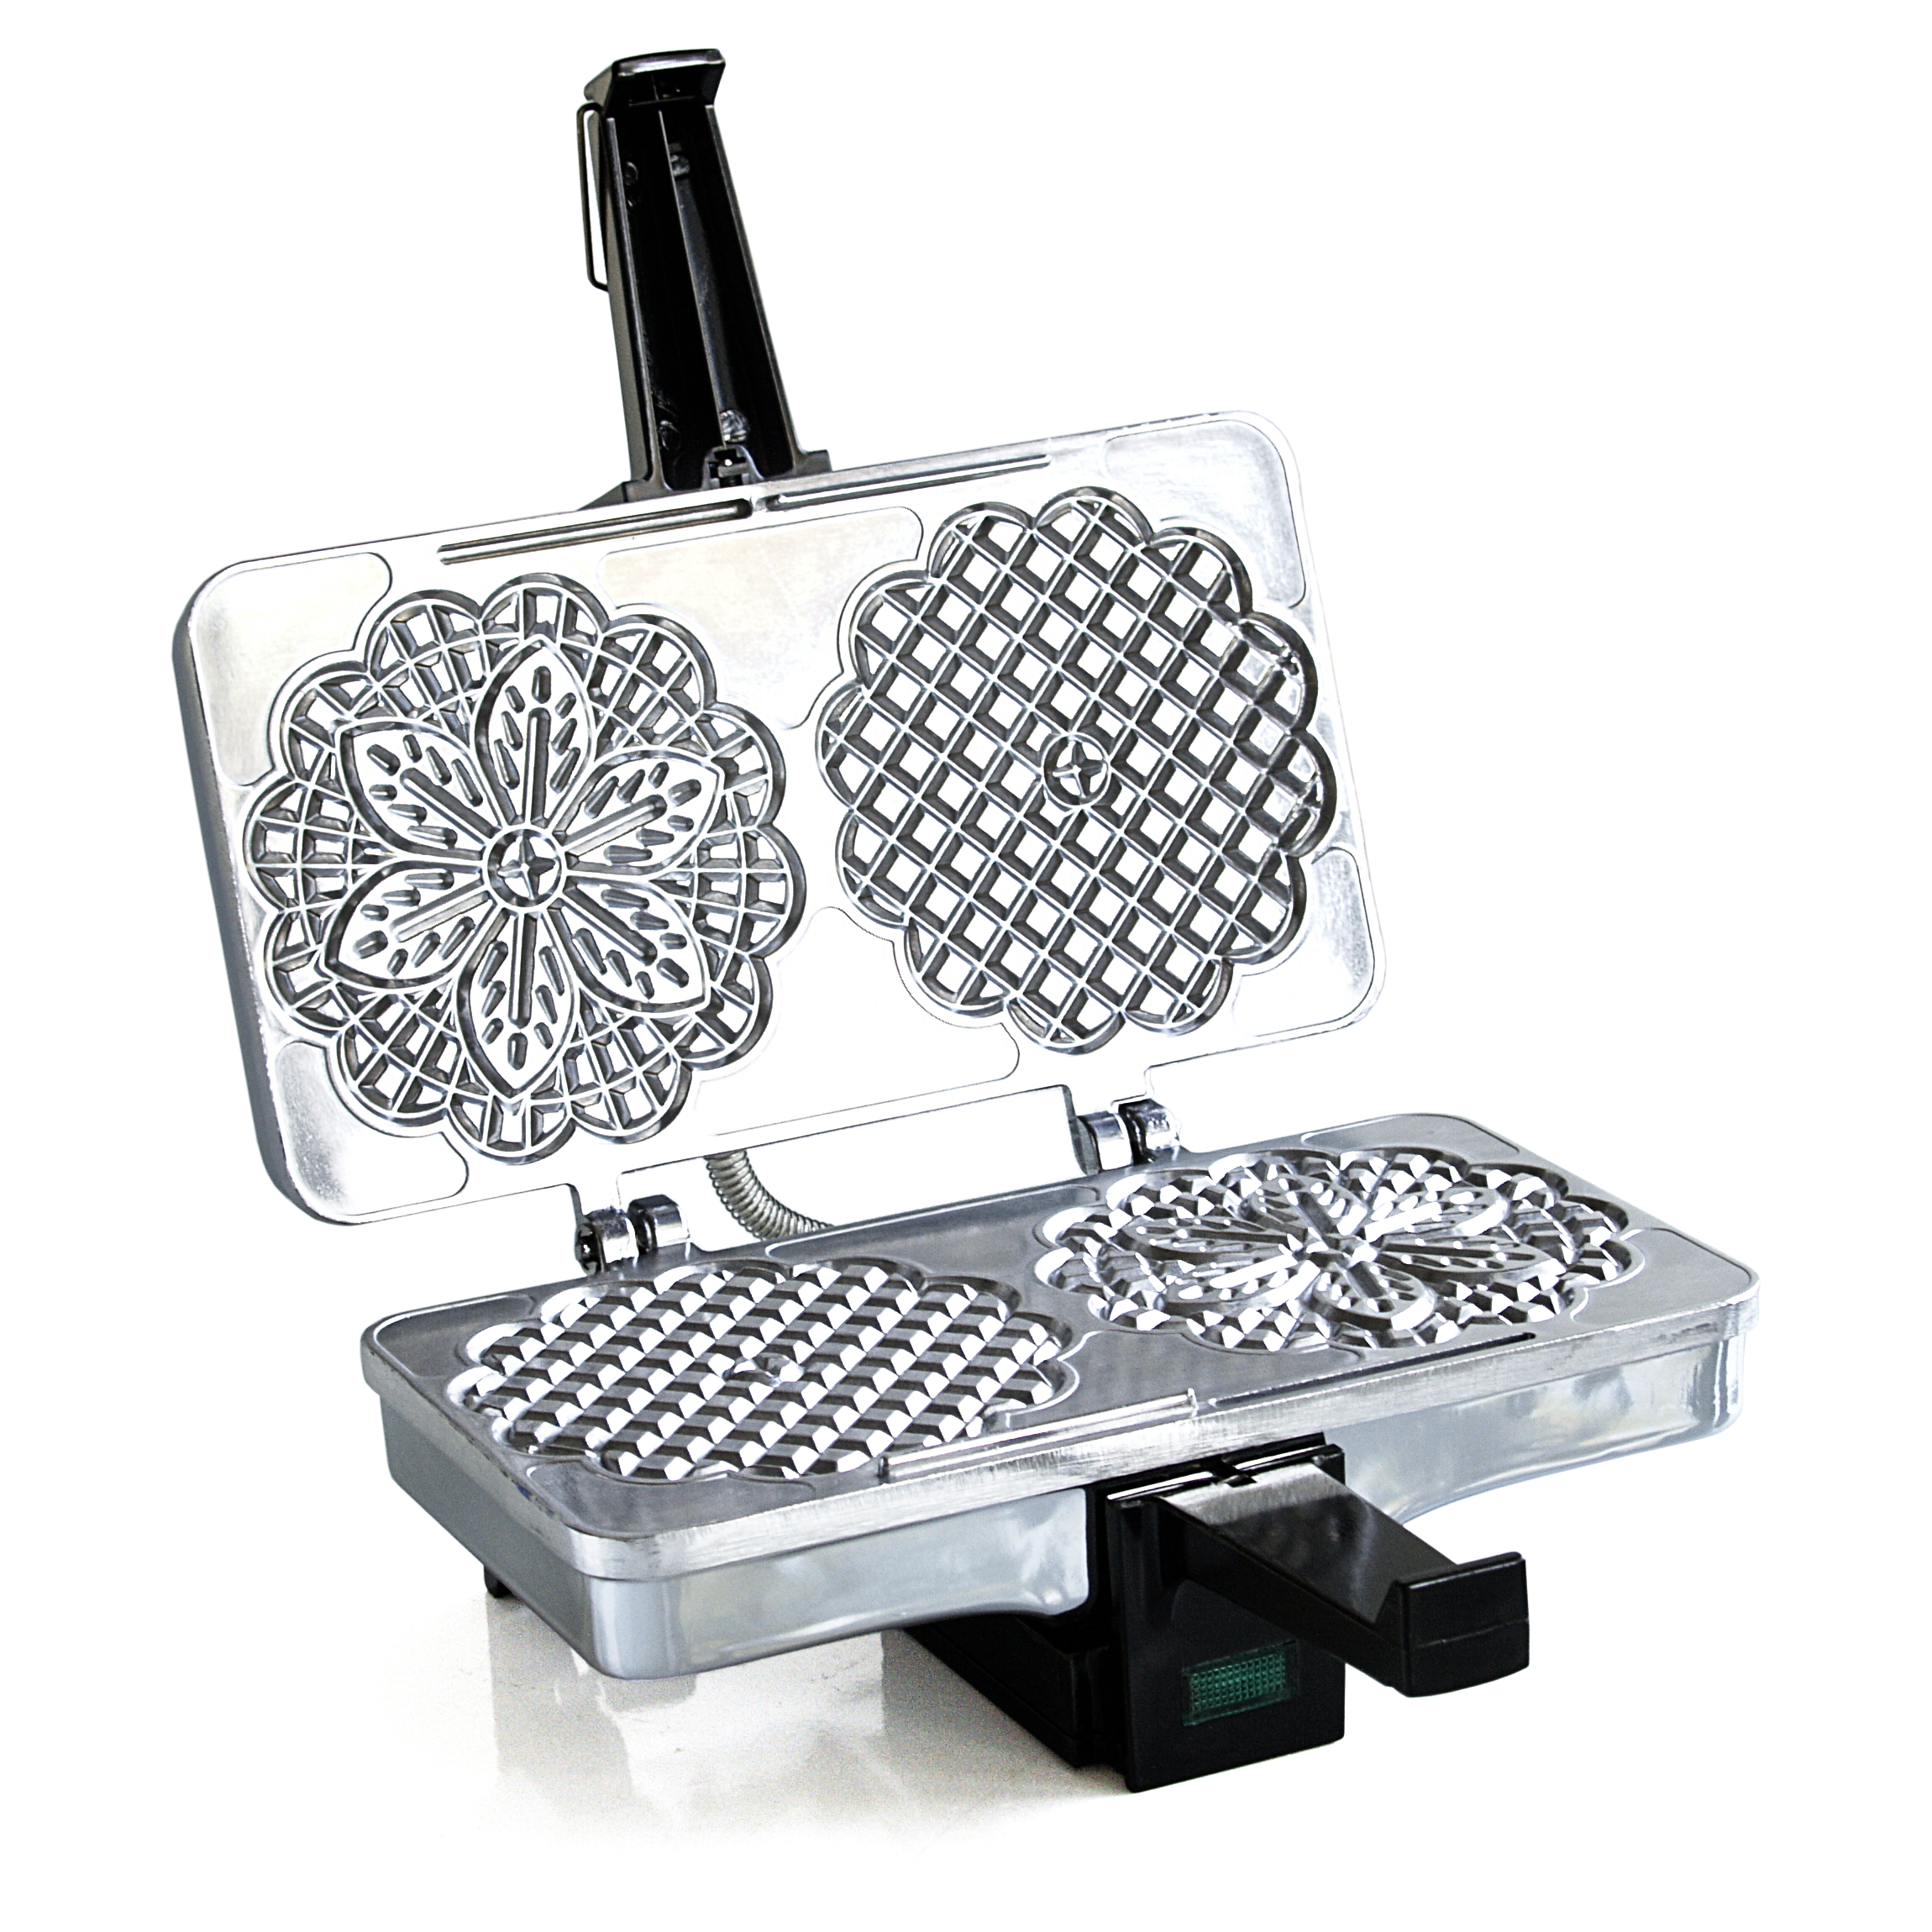 Cucina Pro Polished Nonstick Electric Pizzelle Baker